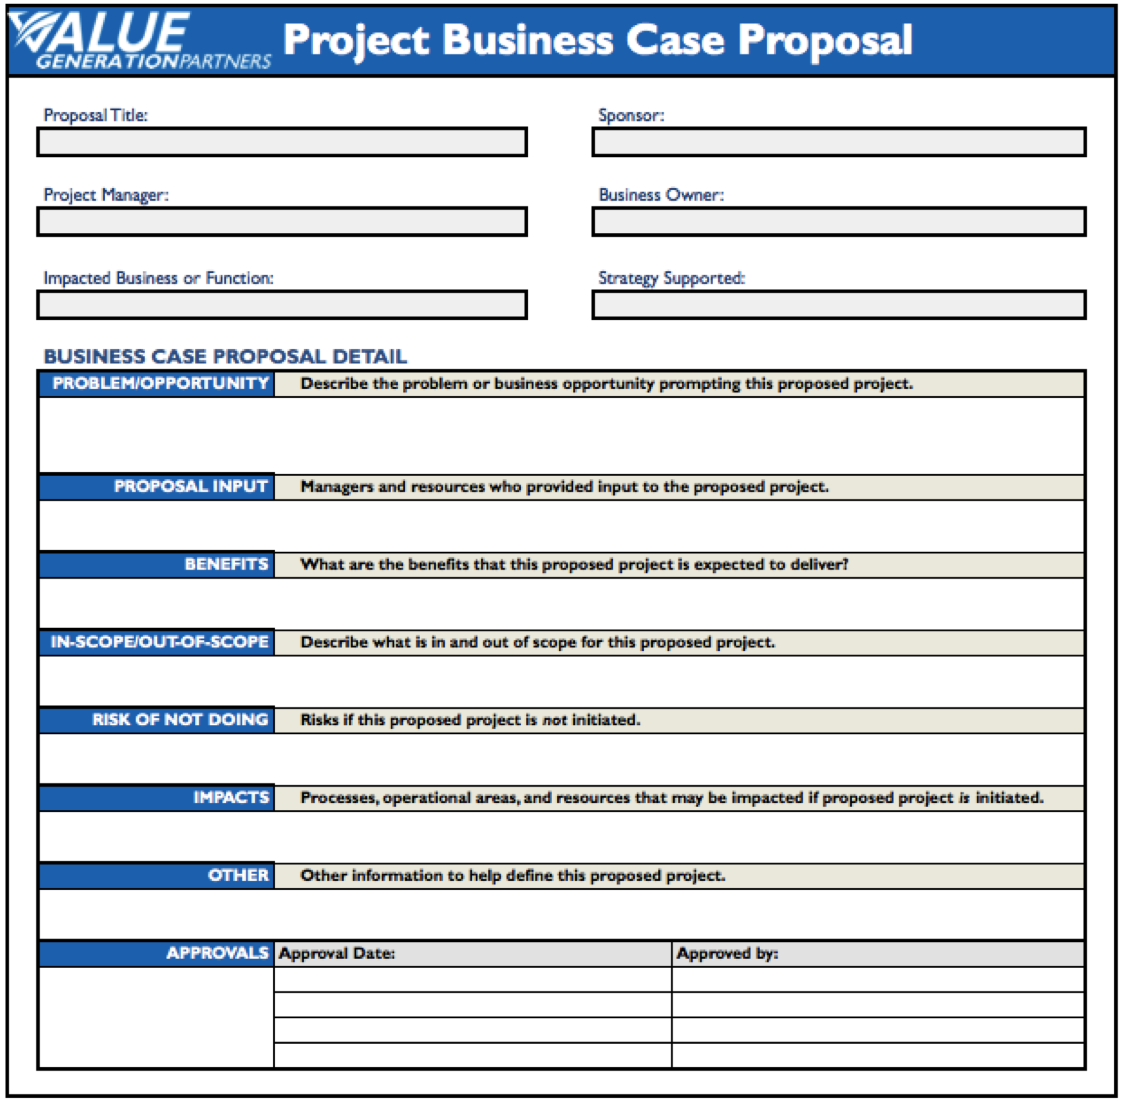 Regardless of your project business case proposal template format regardless of your project business case proposal template format wdtpcn00 flashek Gallery